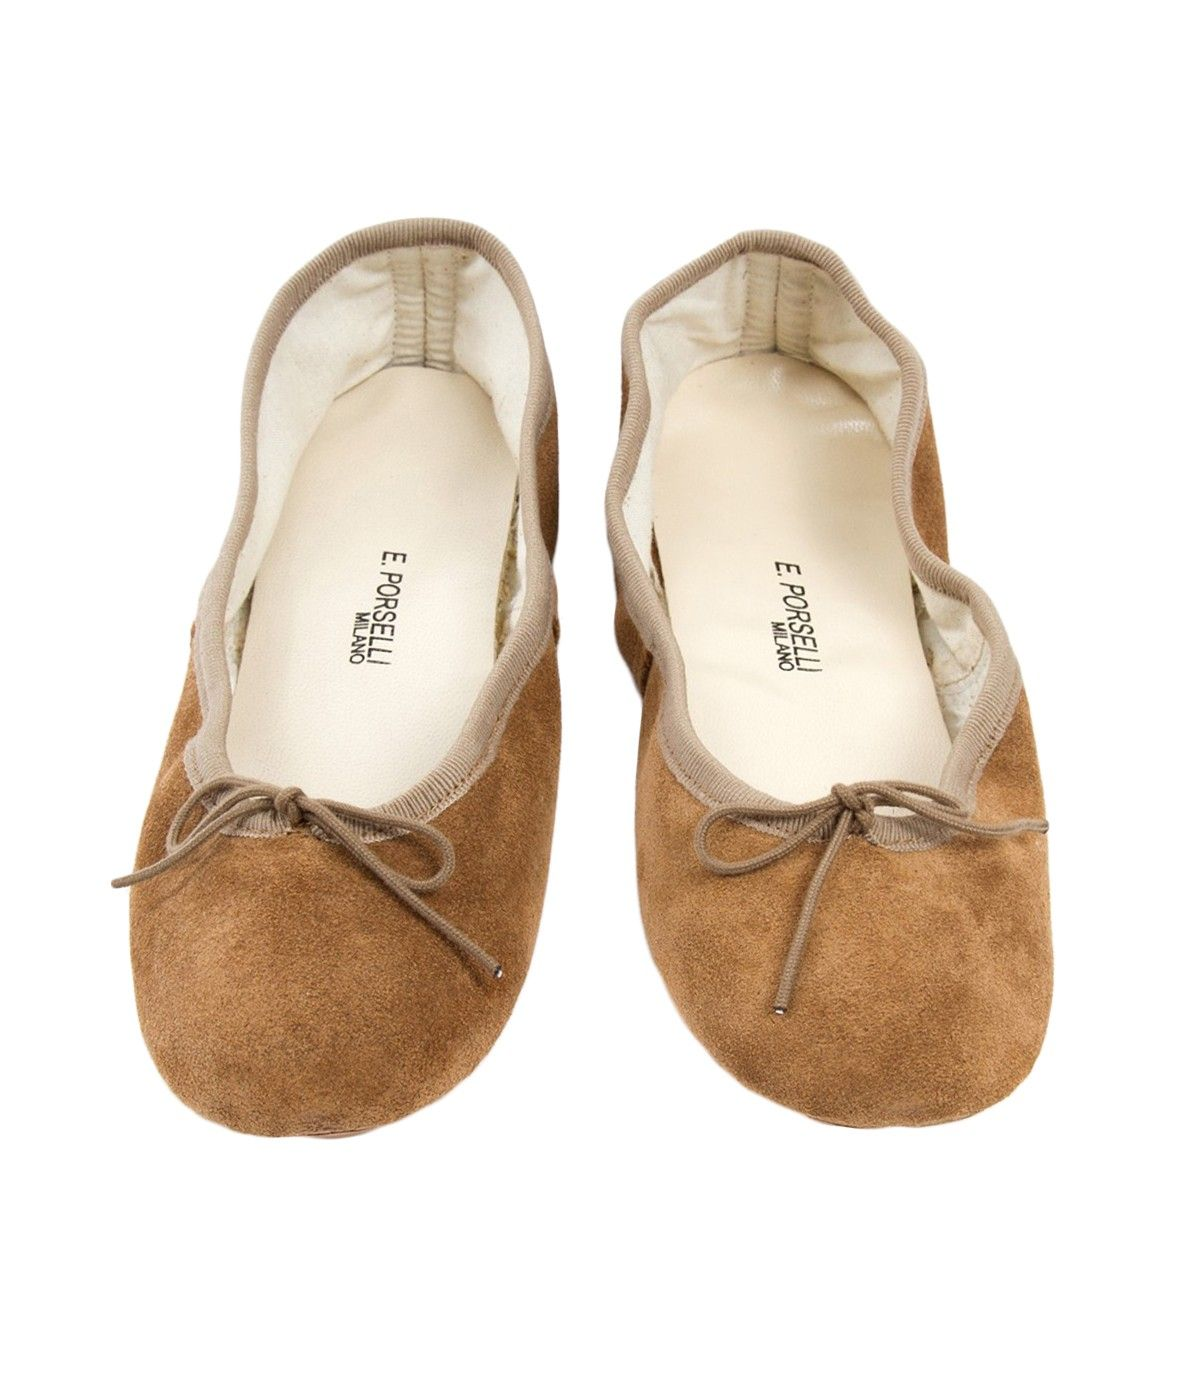 Footwear - Ballet Flats Collection Priv E? Chaussures - Ballerines Collection Prive? For Porselli Pour Porselli 0YNKN33NIG